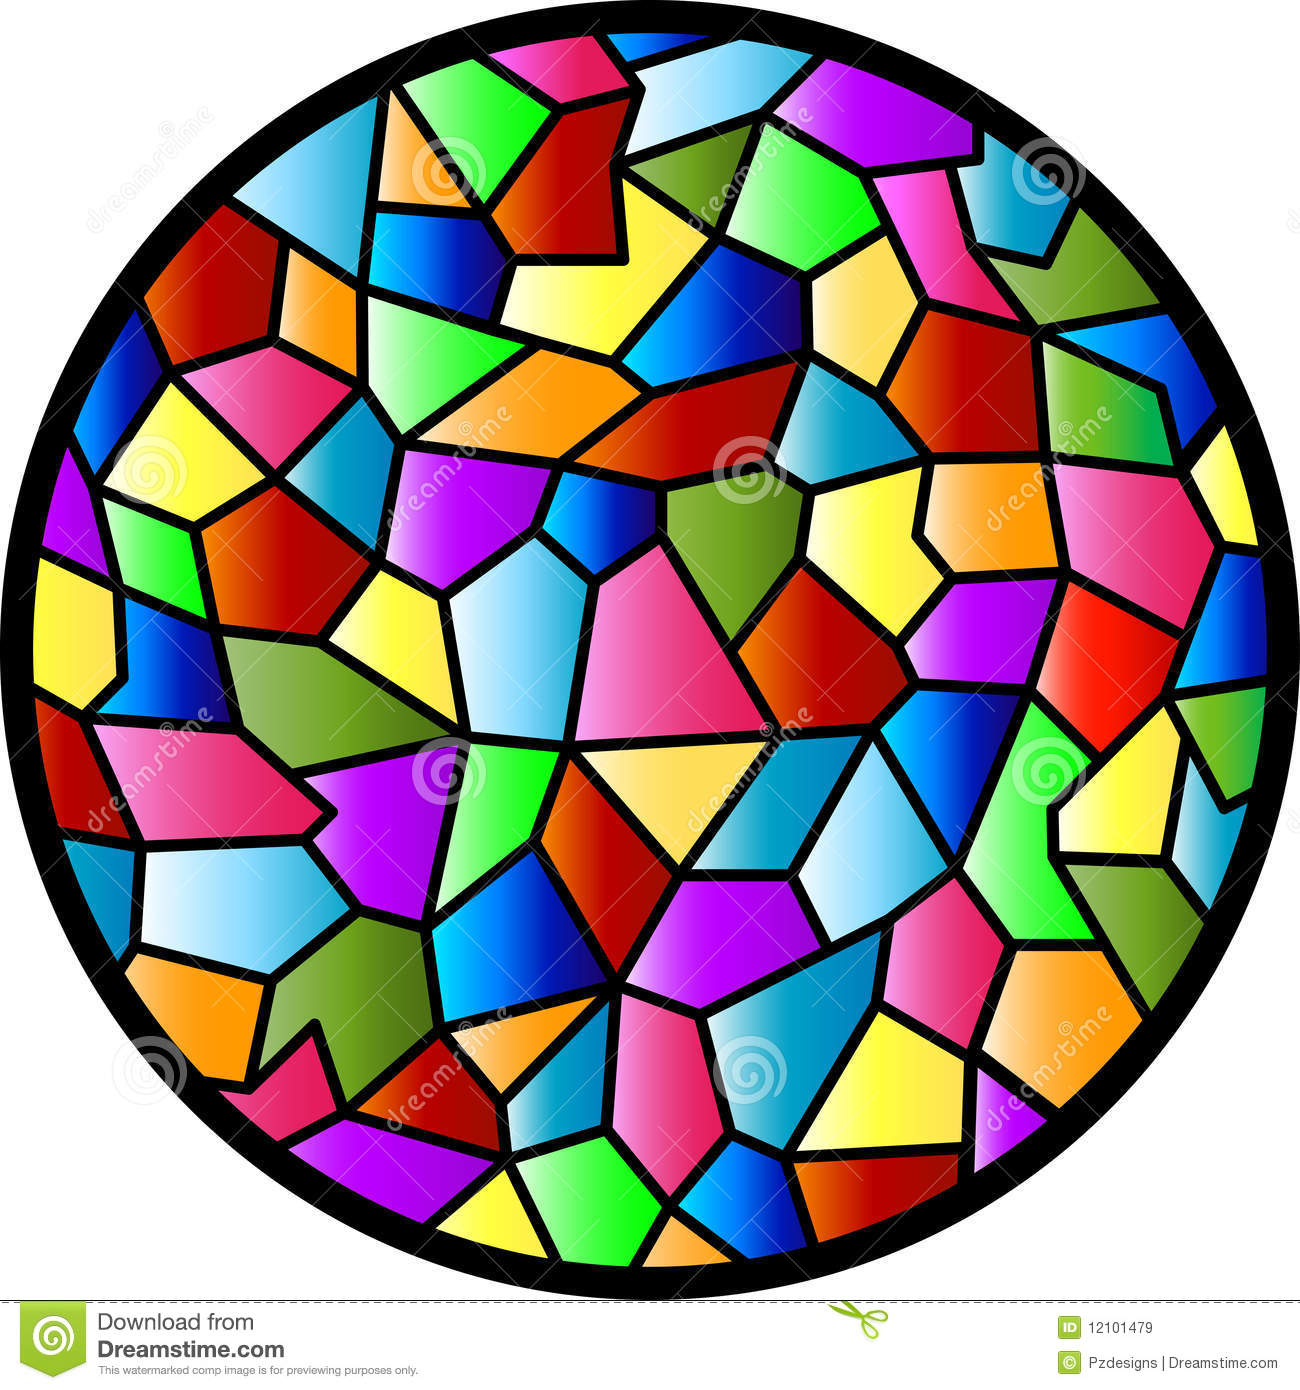 free clipart stained glass window - photo #15